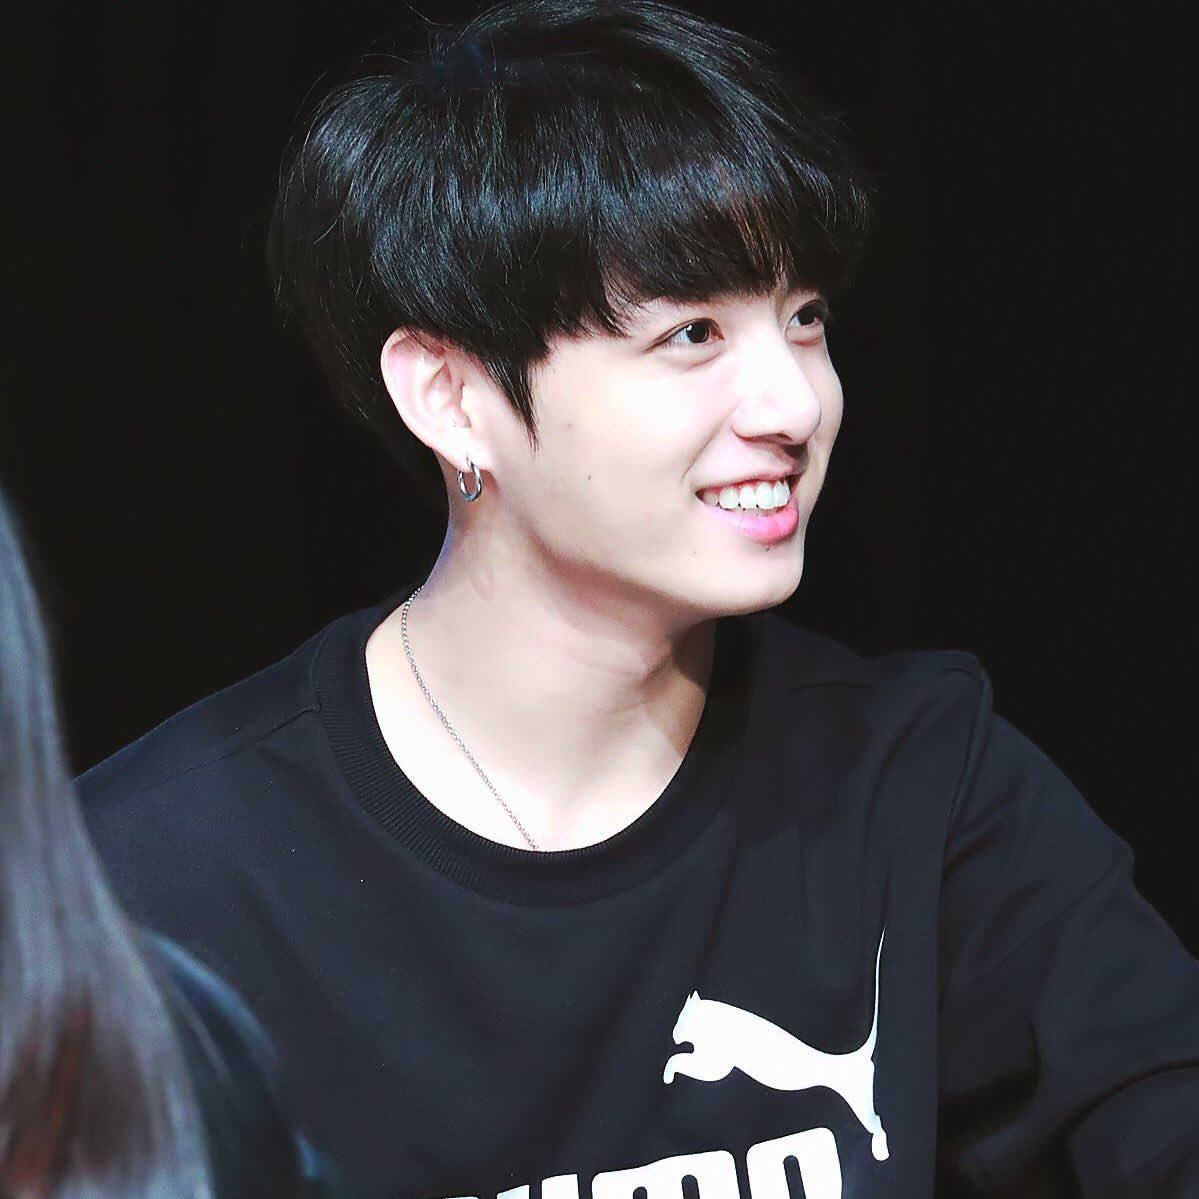 Bts Jungkook Dyed His Hair Black And Fans Think He Looks